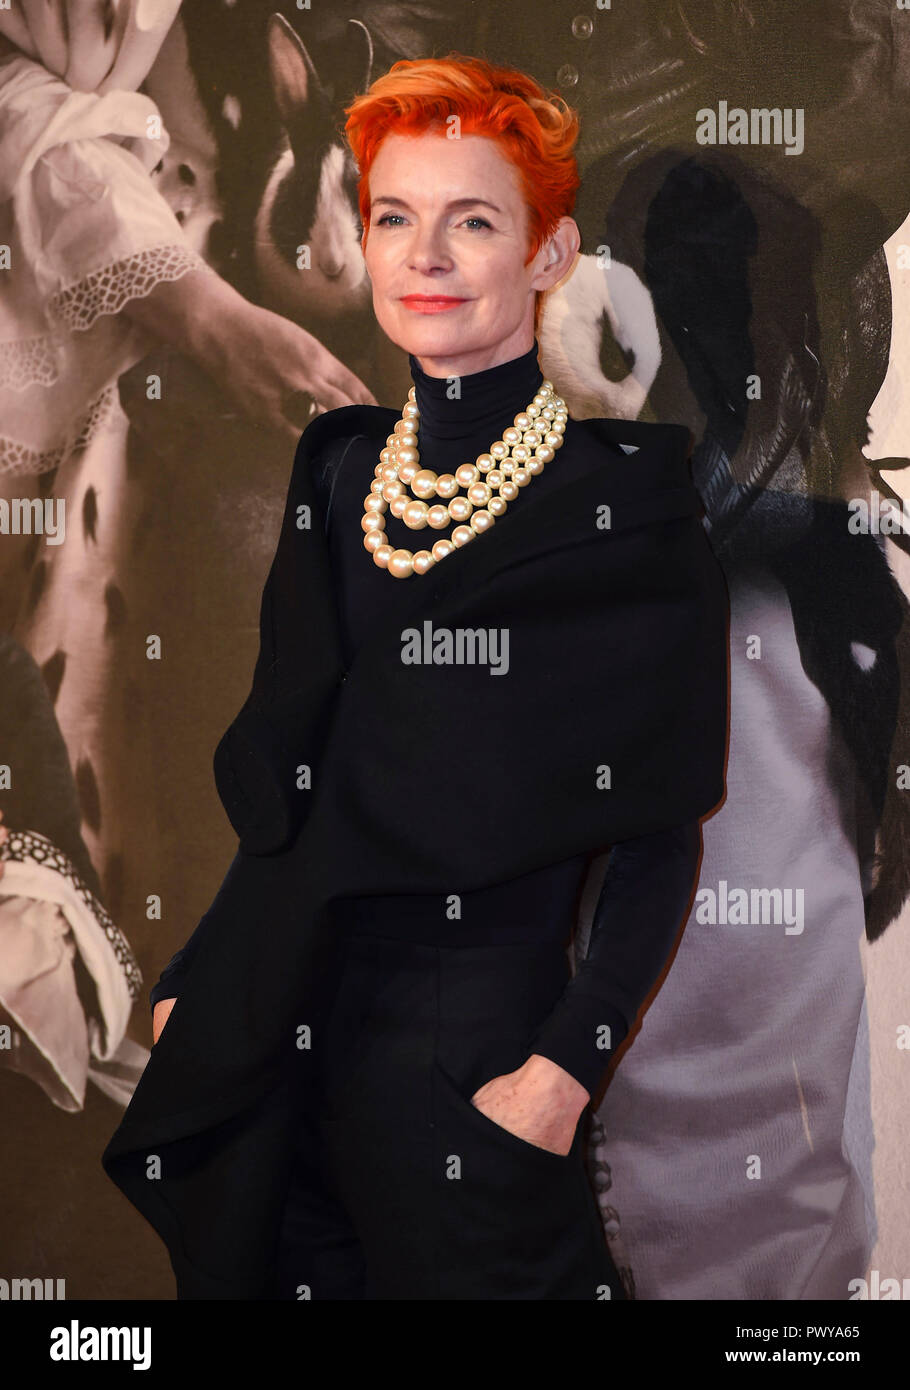 Sandy Powell attends the UK Premiere of 'The Favourite' & American Express Gala at the 62nd BFI London Film Festival. - Stock Image